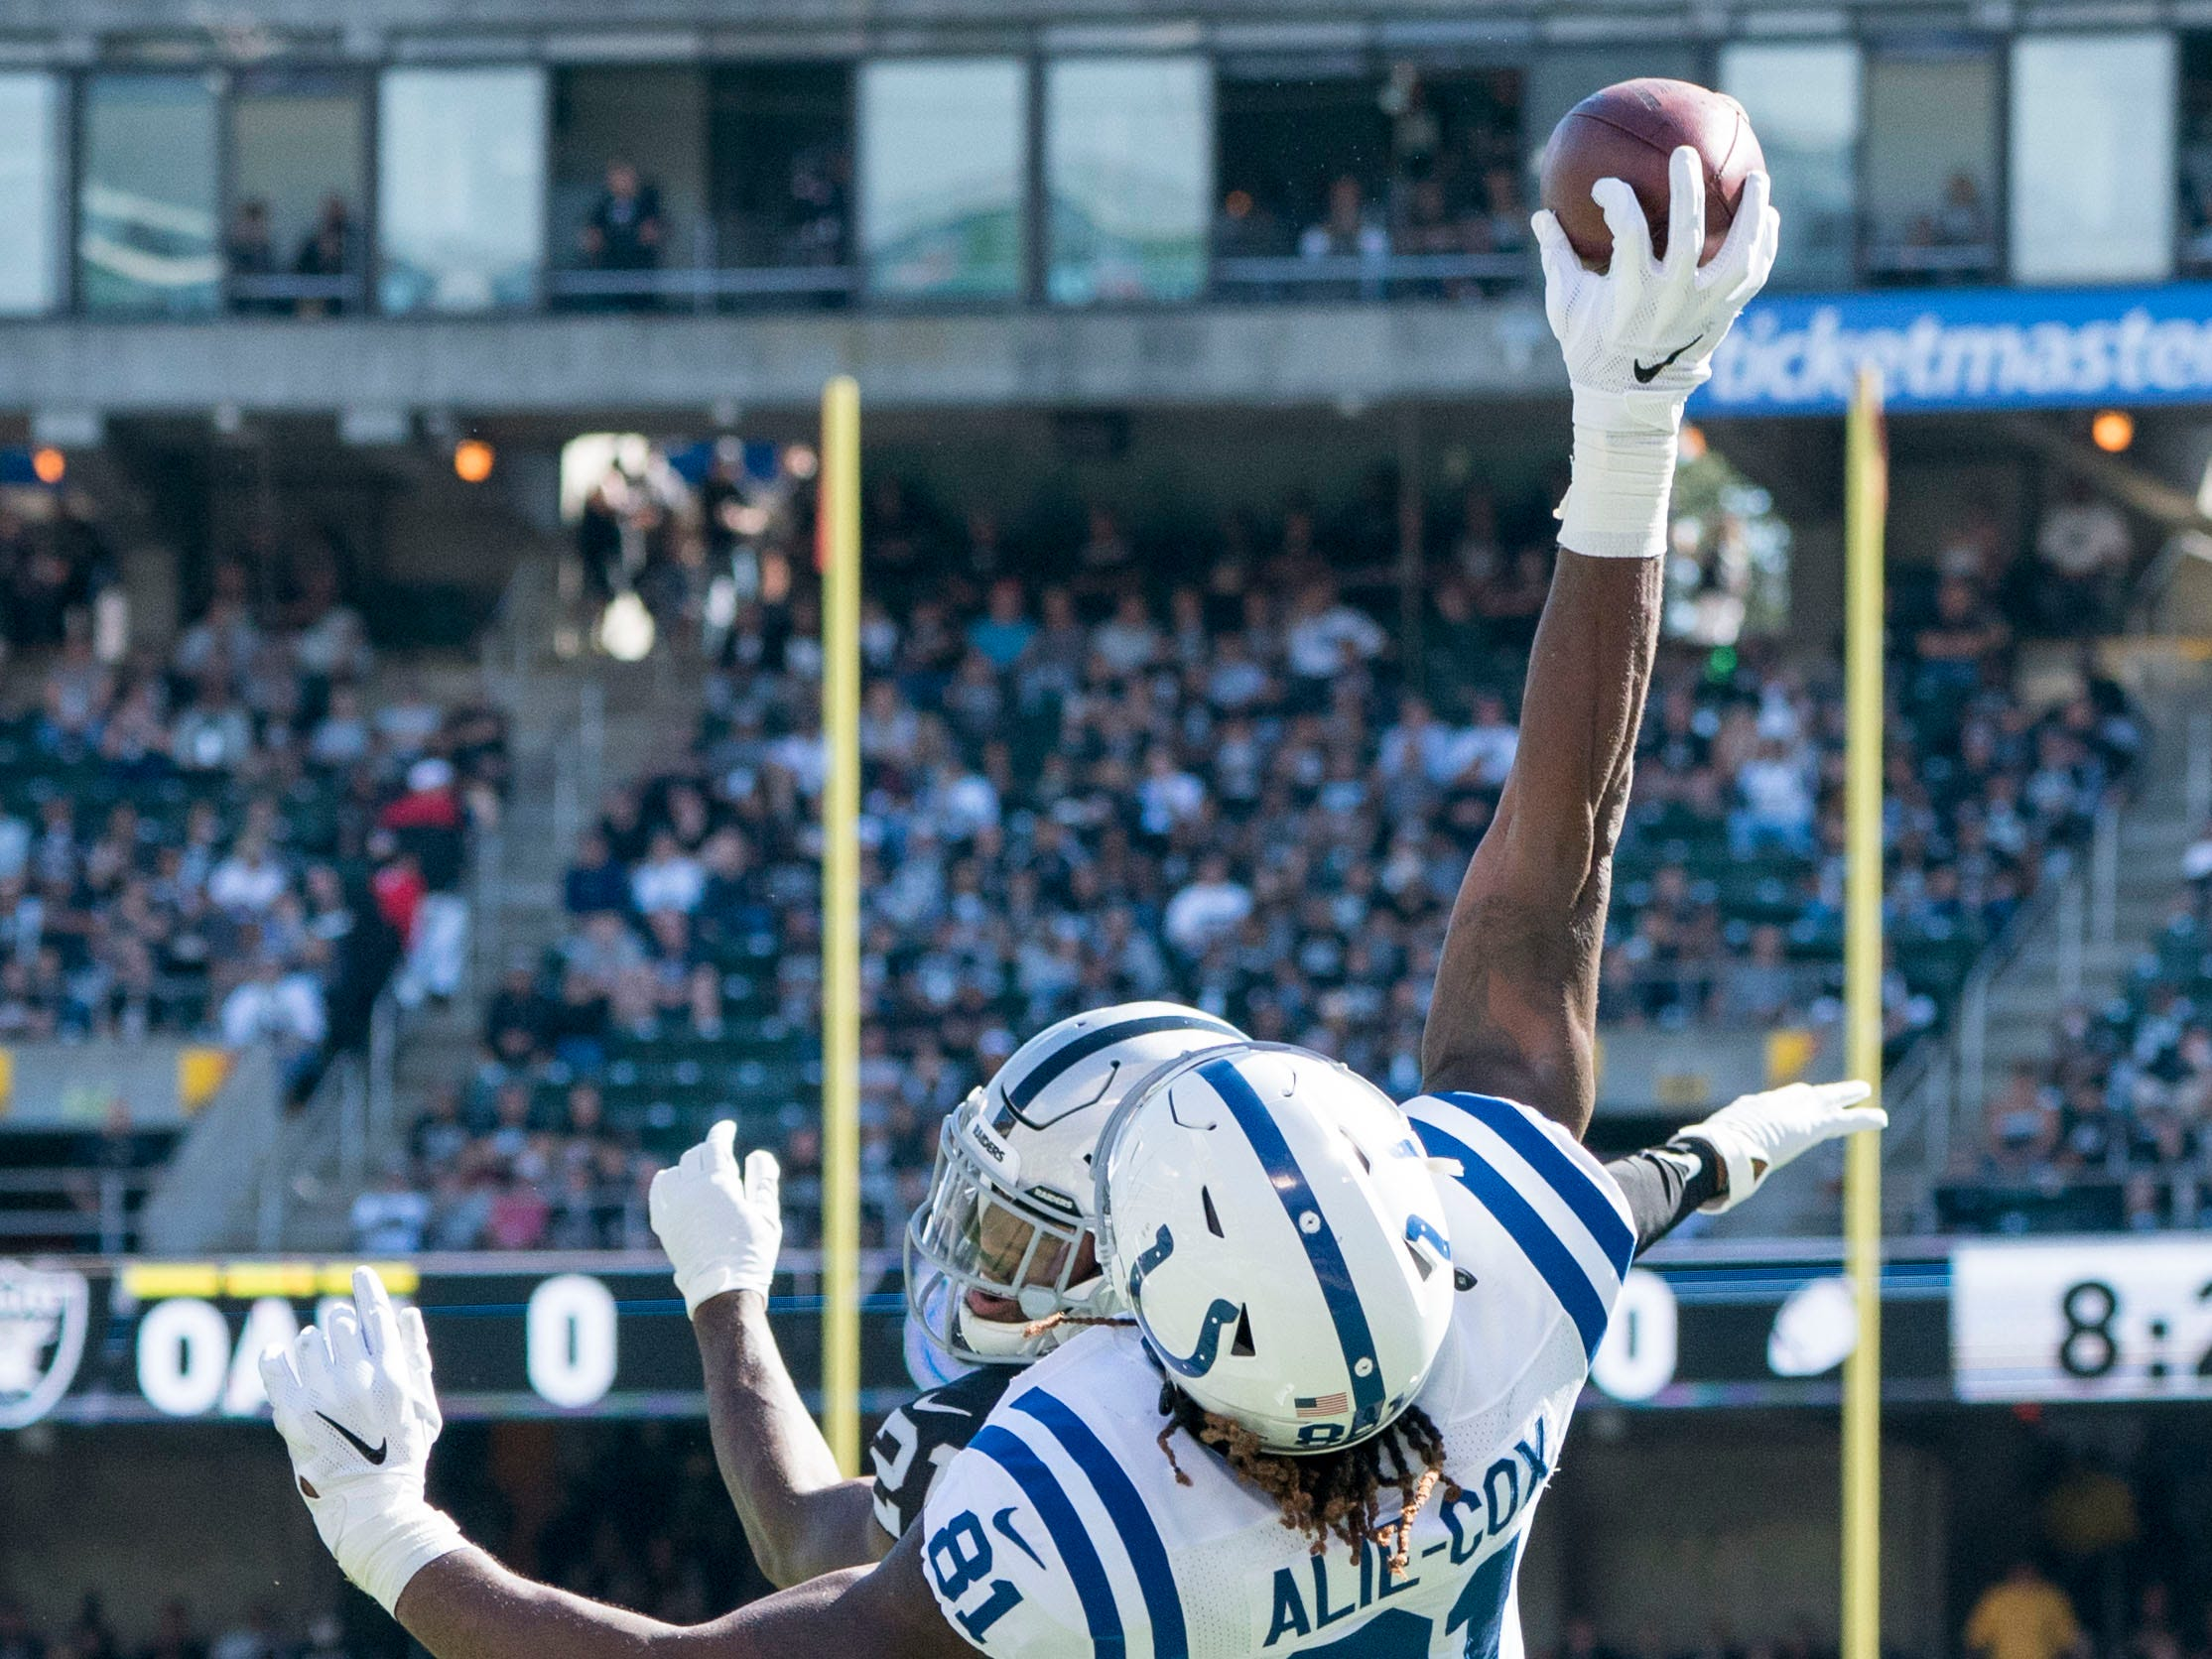 Week 8: Indianapolis Colts tight end Mo Alie-Cox catches a touchdown pass against the Oakland Raiders at Oakland Coliseum. The Colts won the game, 42-28.